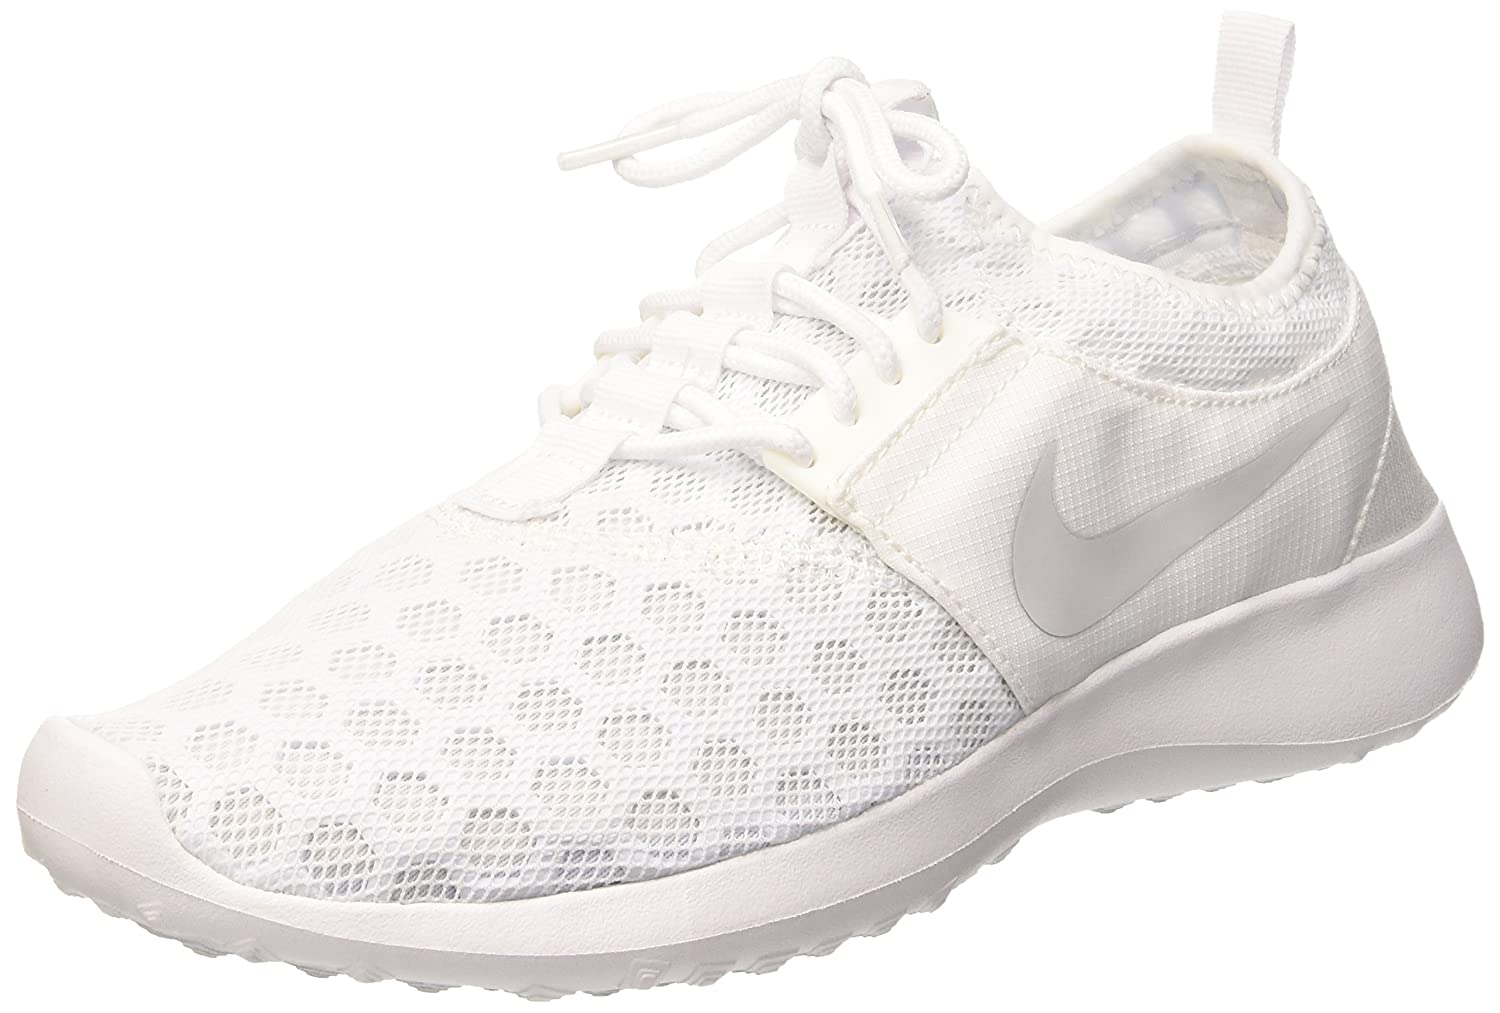 NIKE Women's Juvenate Running Shoe B00VKY3K5W 5 B(M) US|White/Pure Platinum